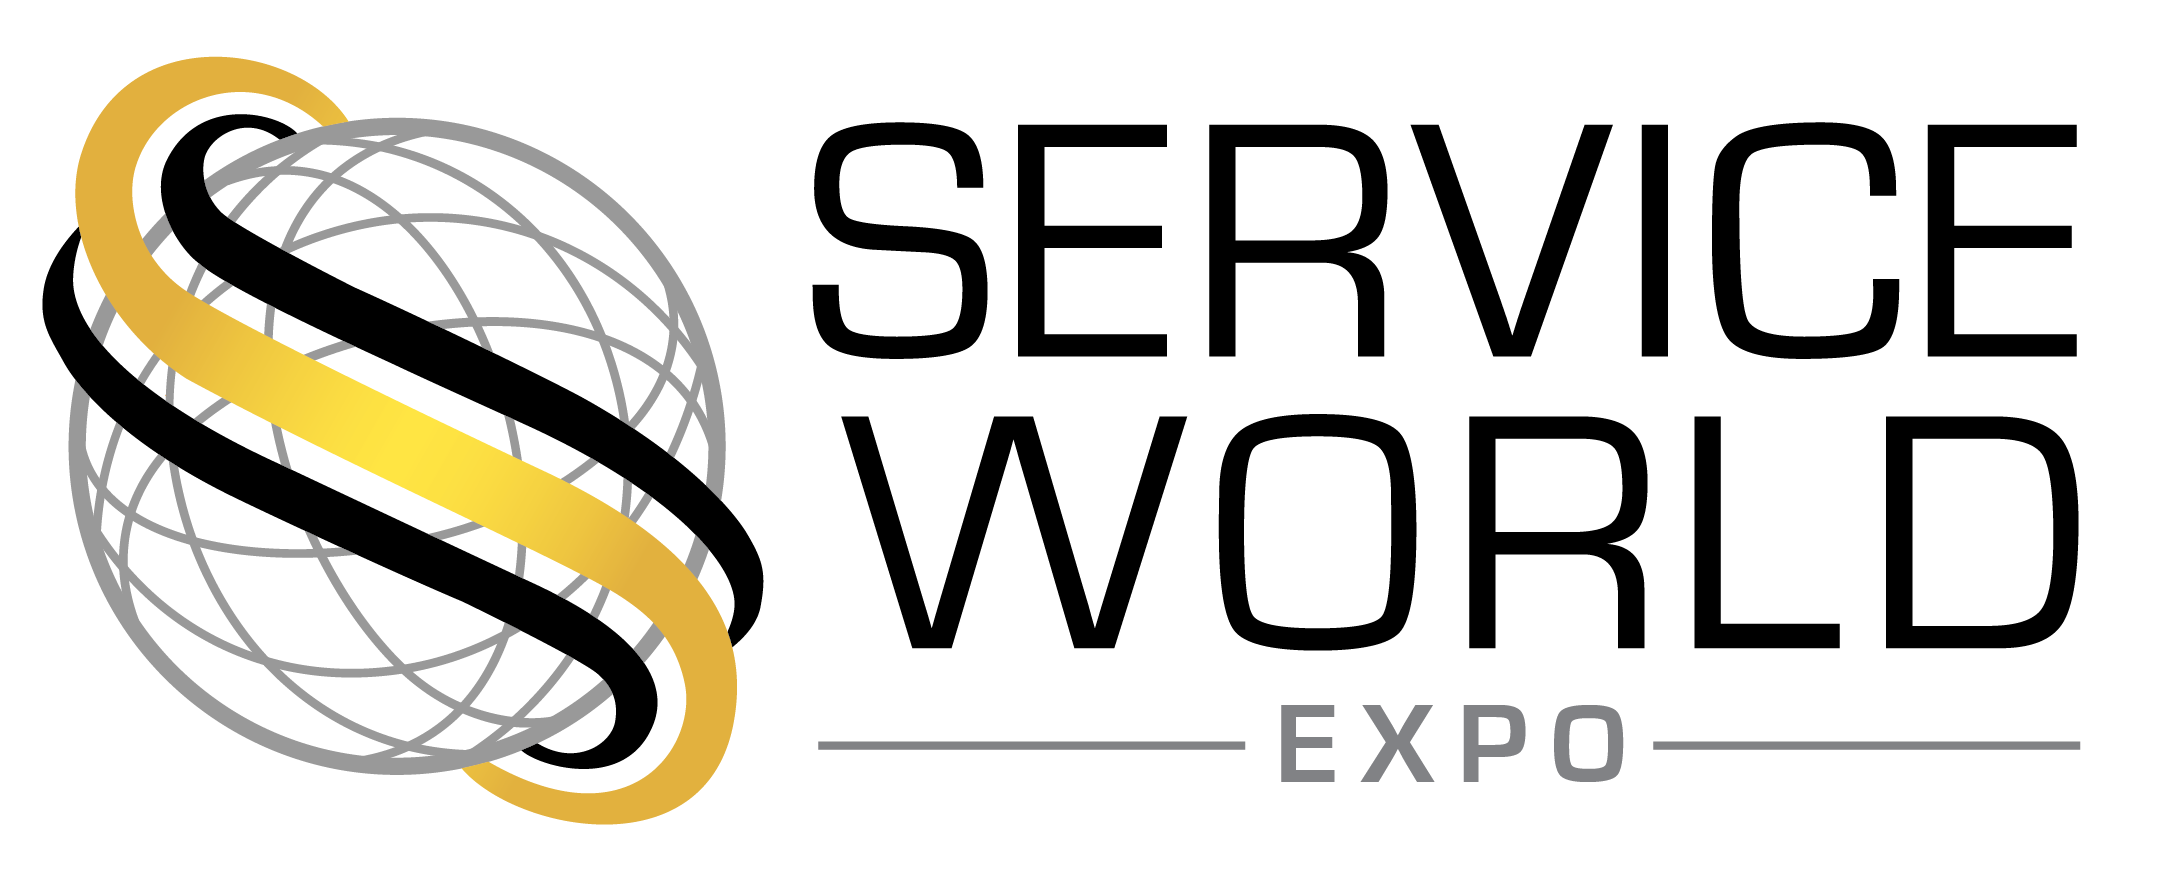 Service World Expo Trade Show and Conference 2020 logo